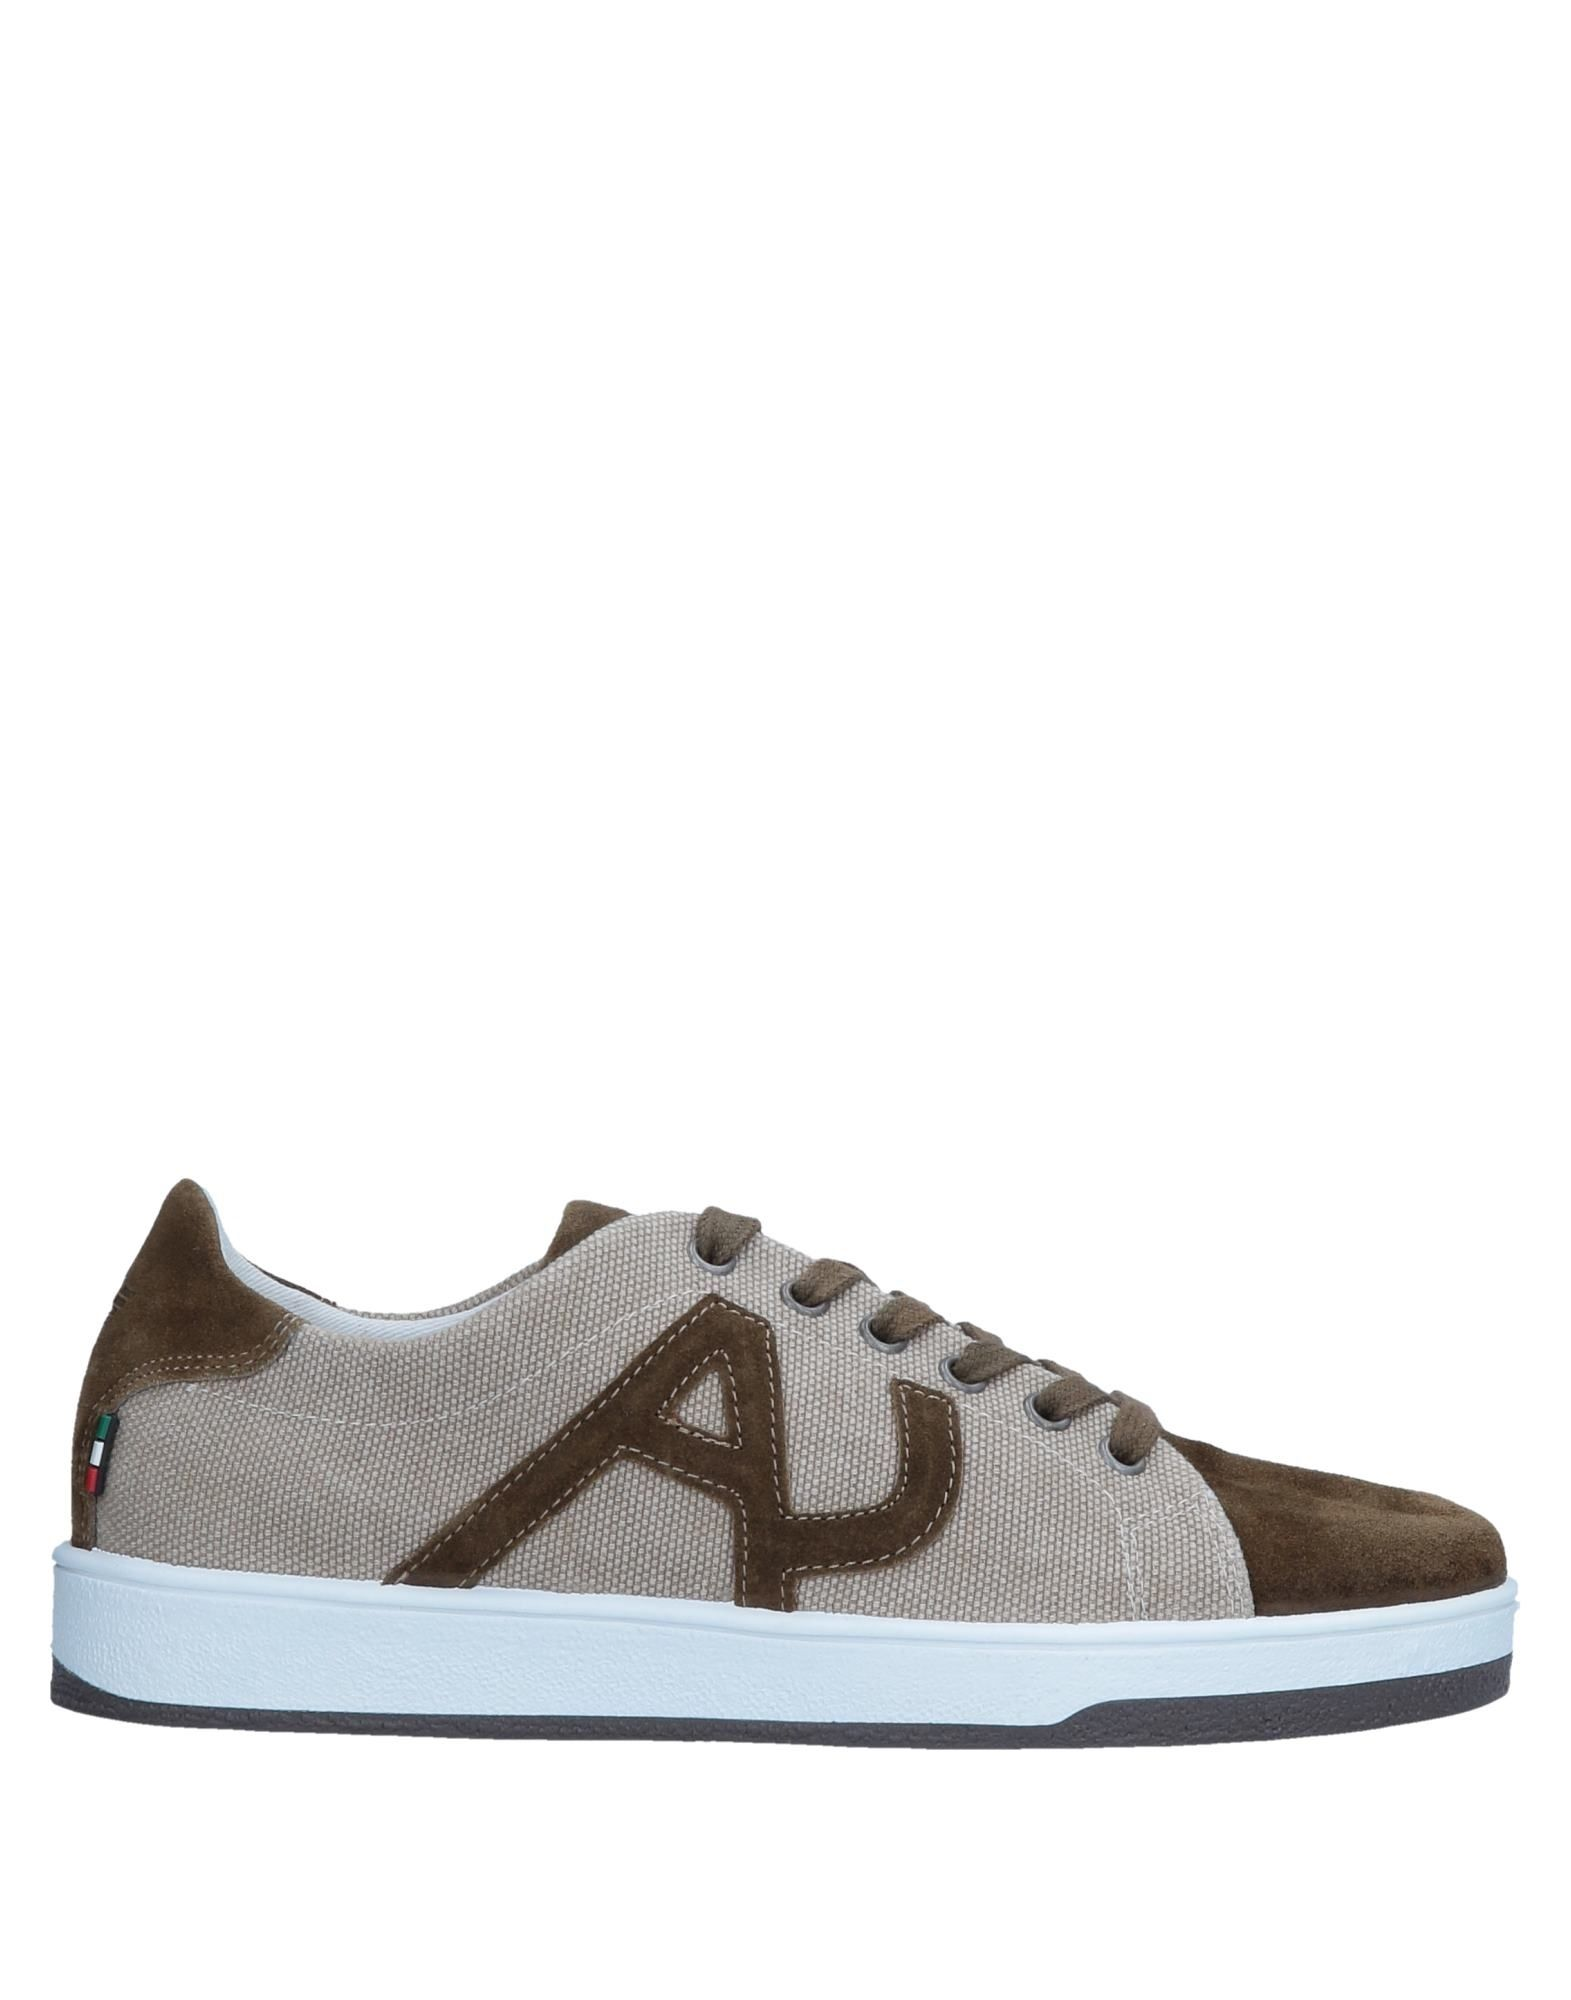 Armani Jeans Sneakers - Men on Armani Jeans Sneakers online on Men  United Kingdom - 11558037WG 6f0d9d